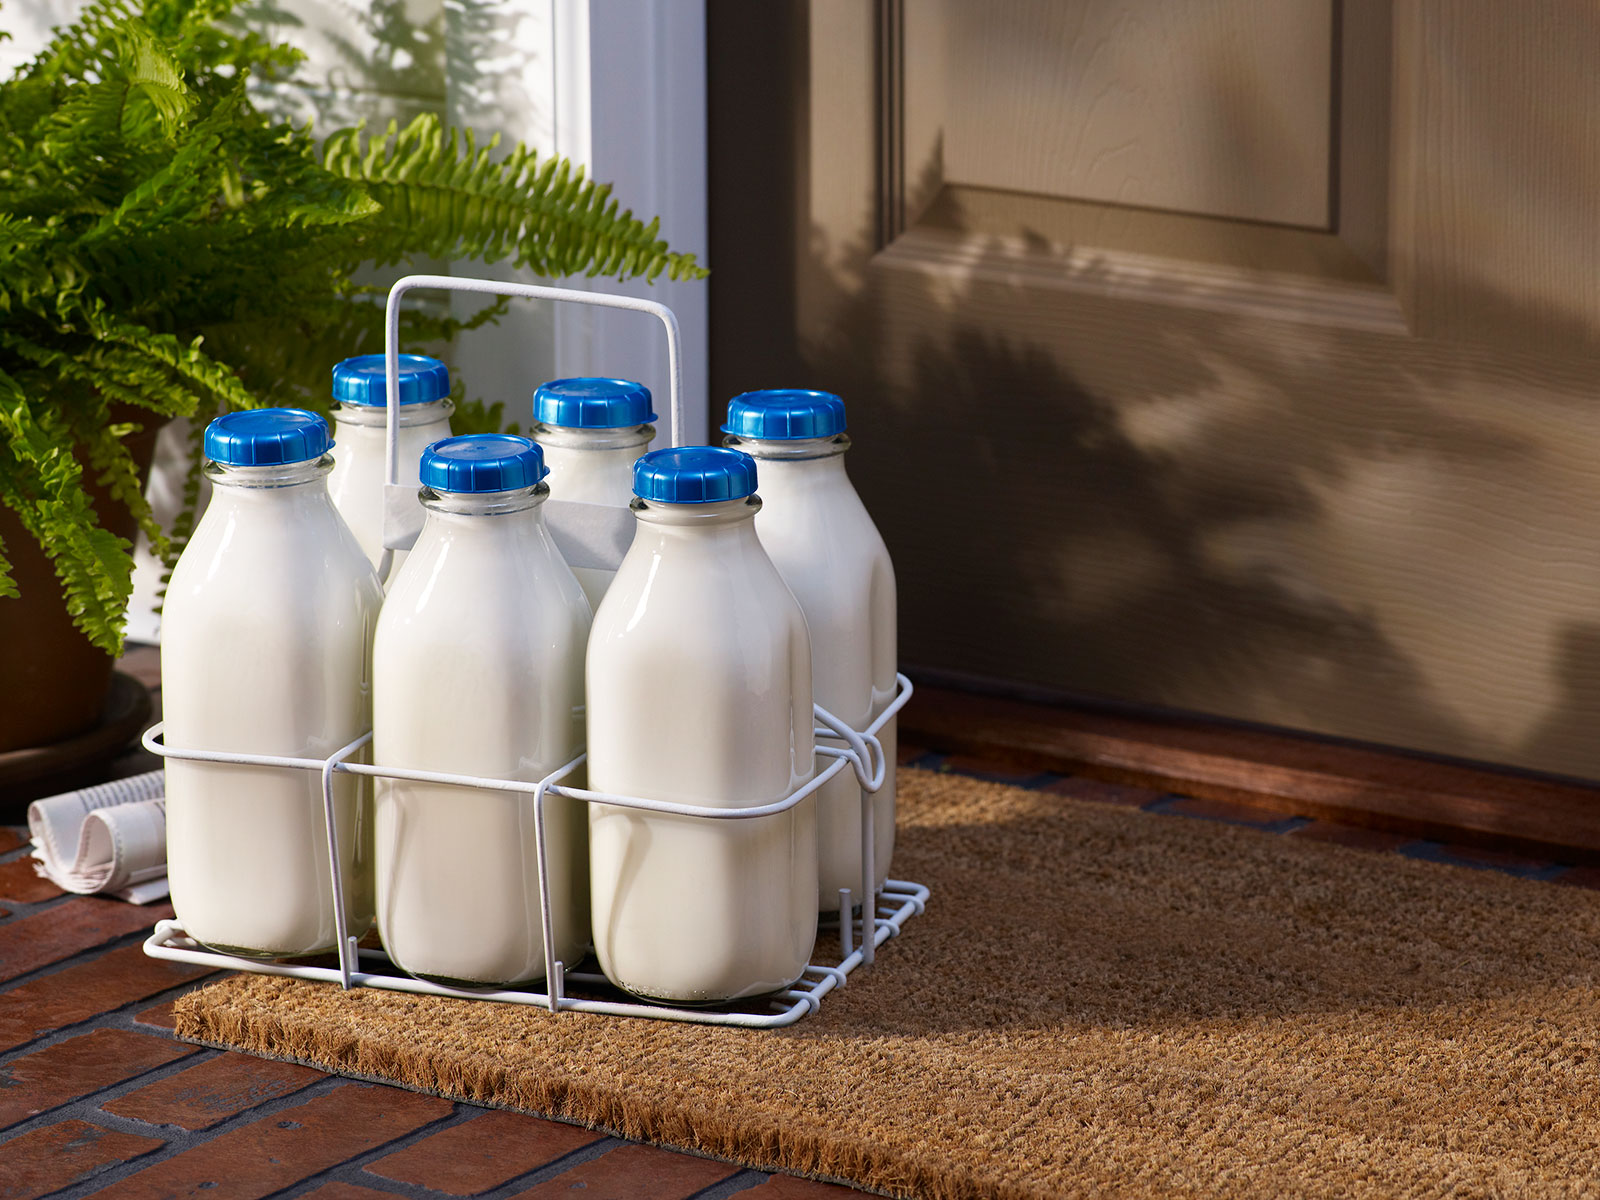 milkman delivery to front porch